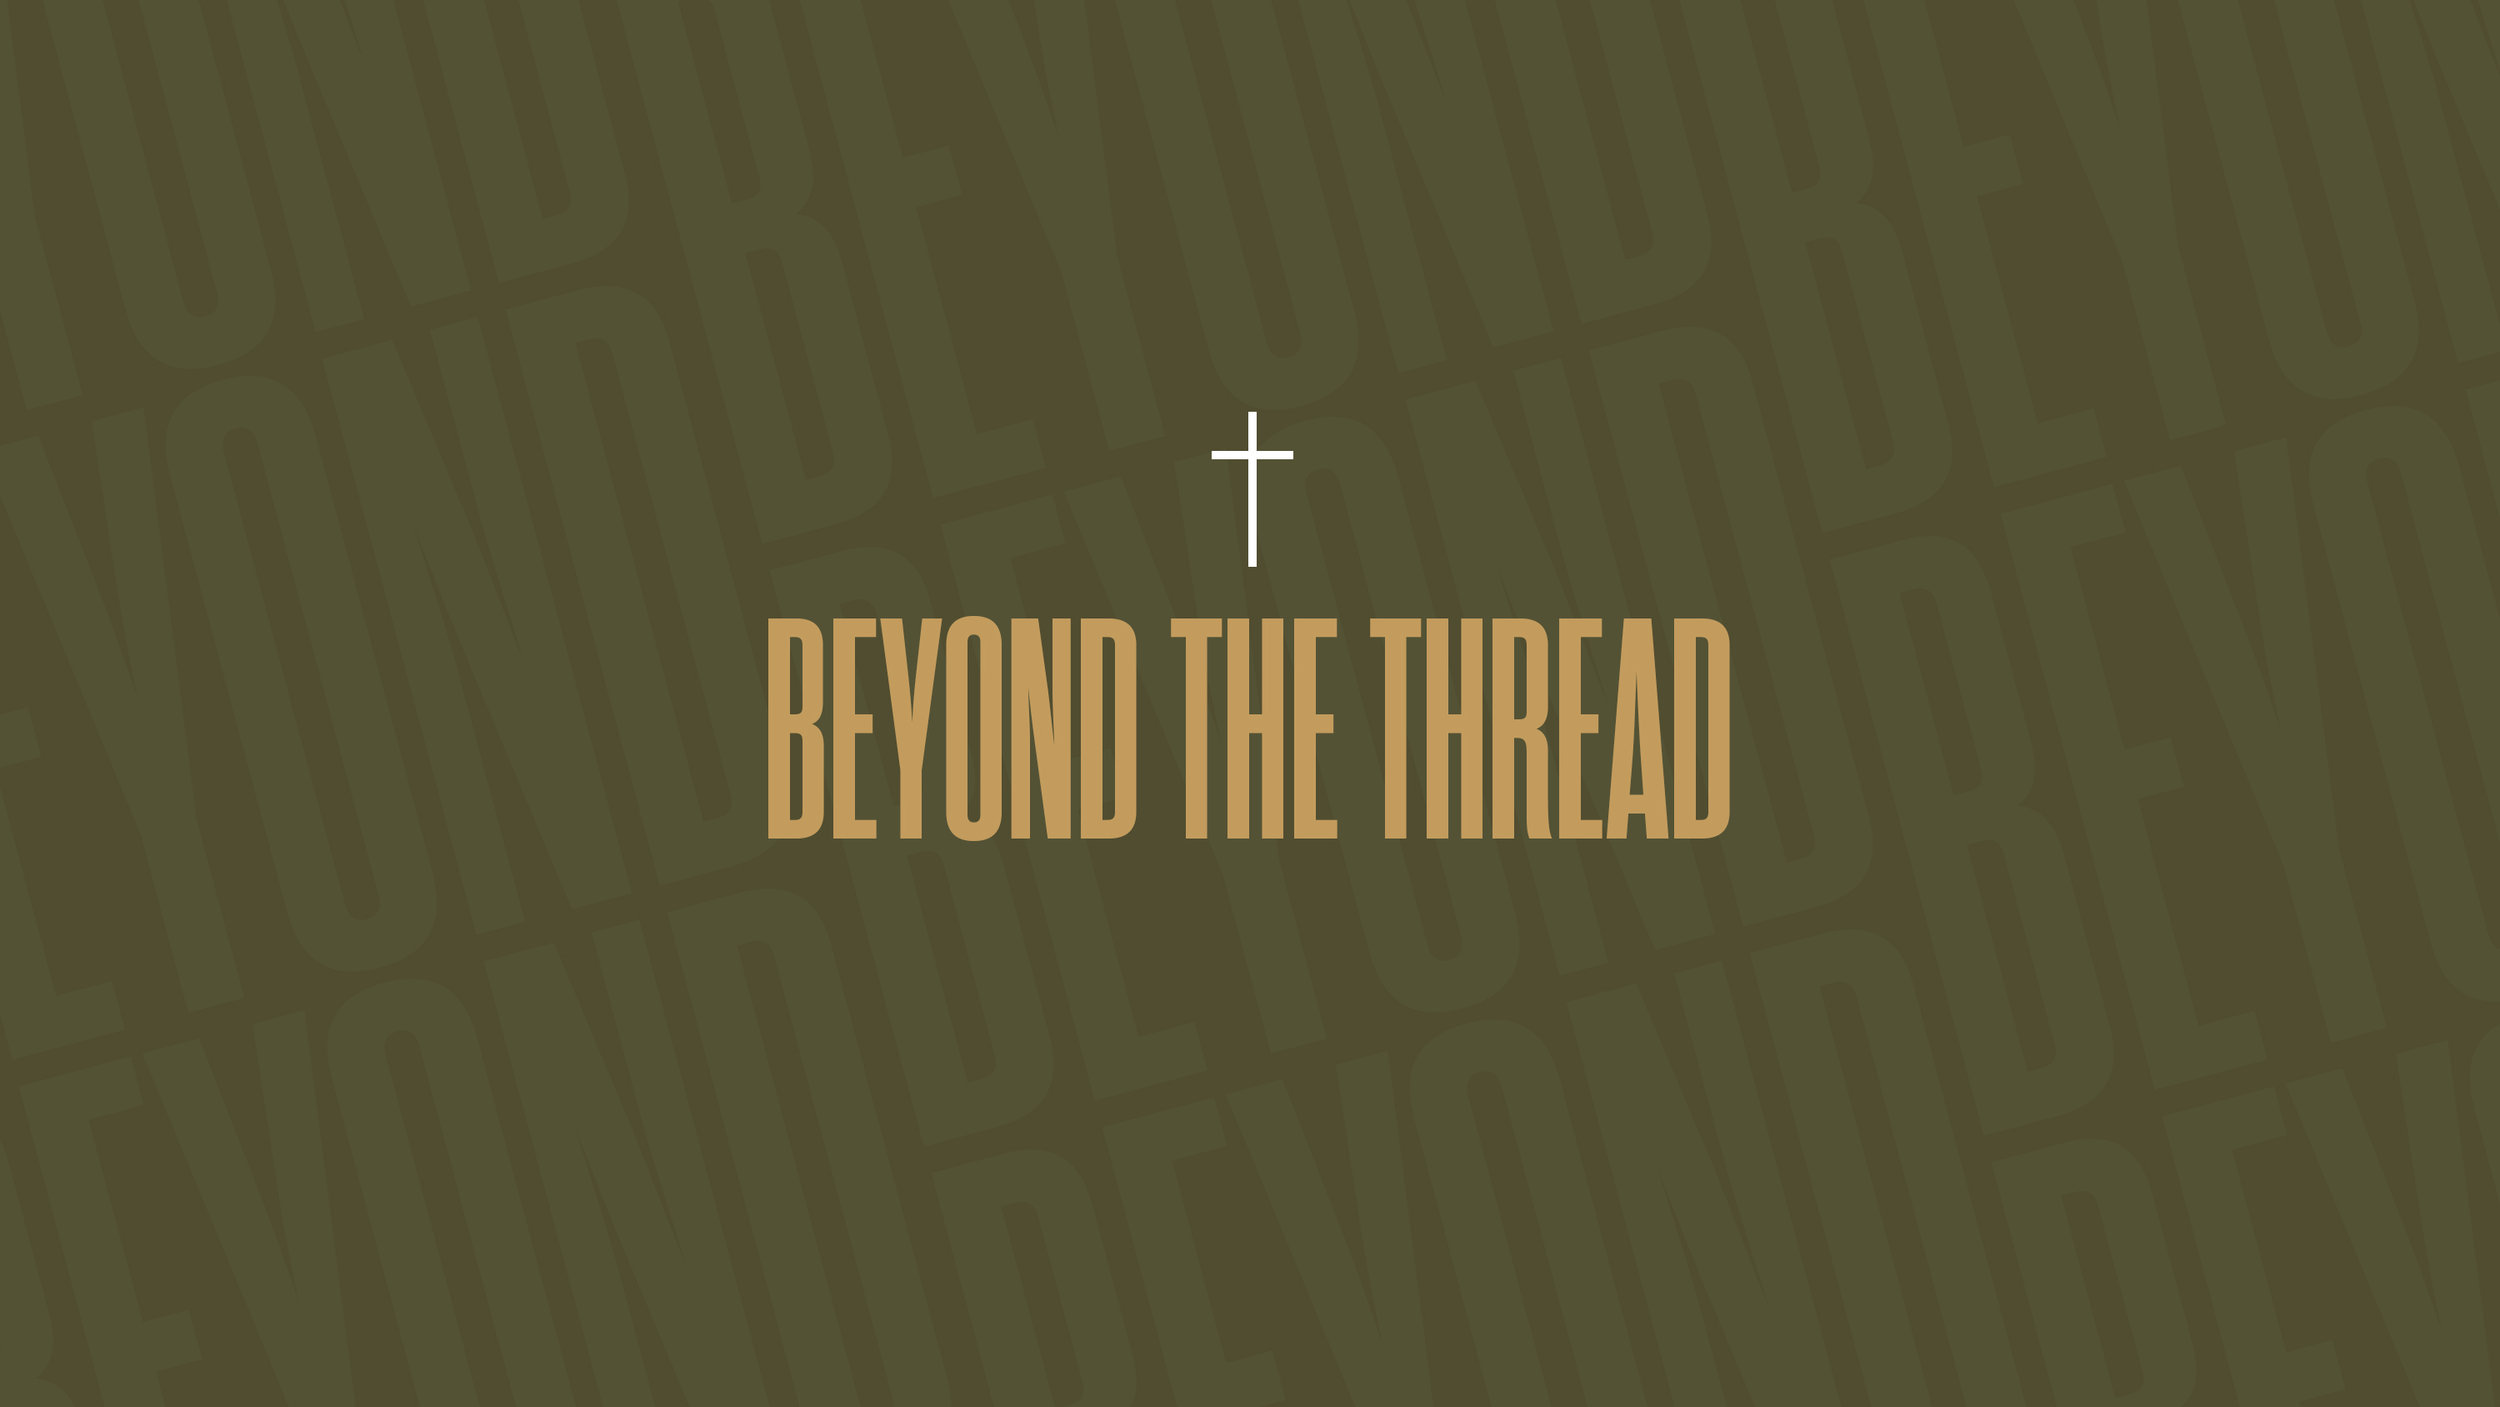 BEYOND THE THREAD